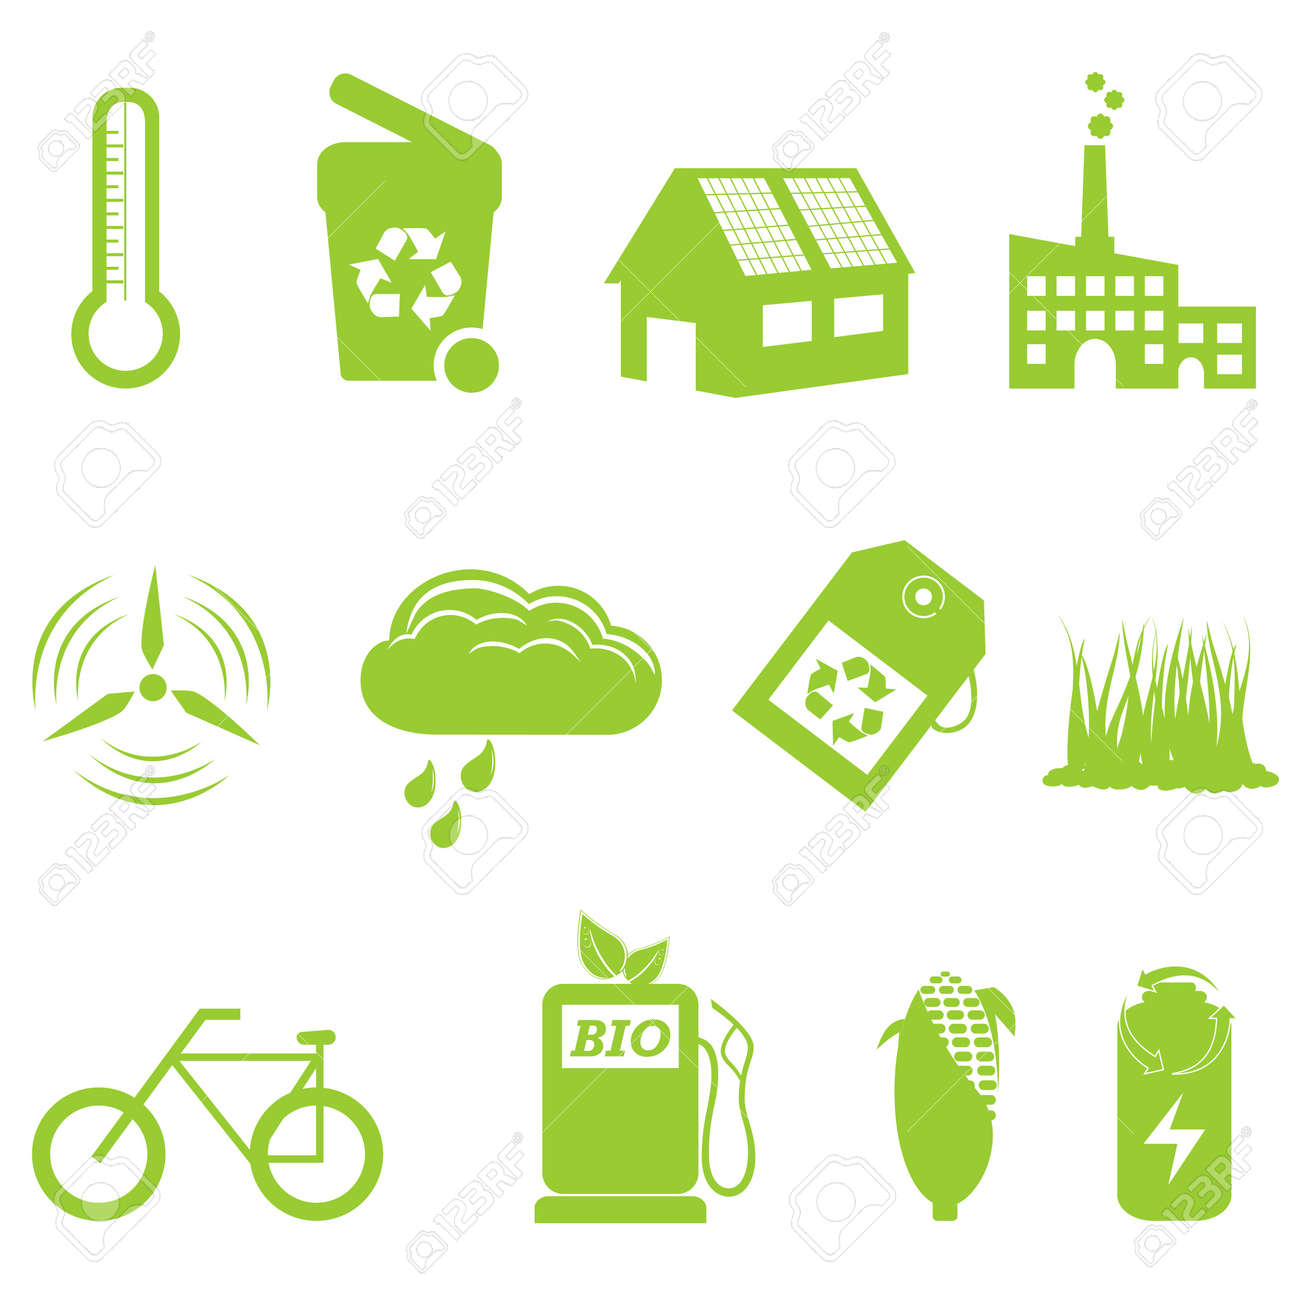 Eco and recycling related icon set Stock Vector - 10756083